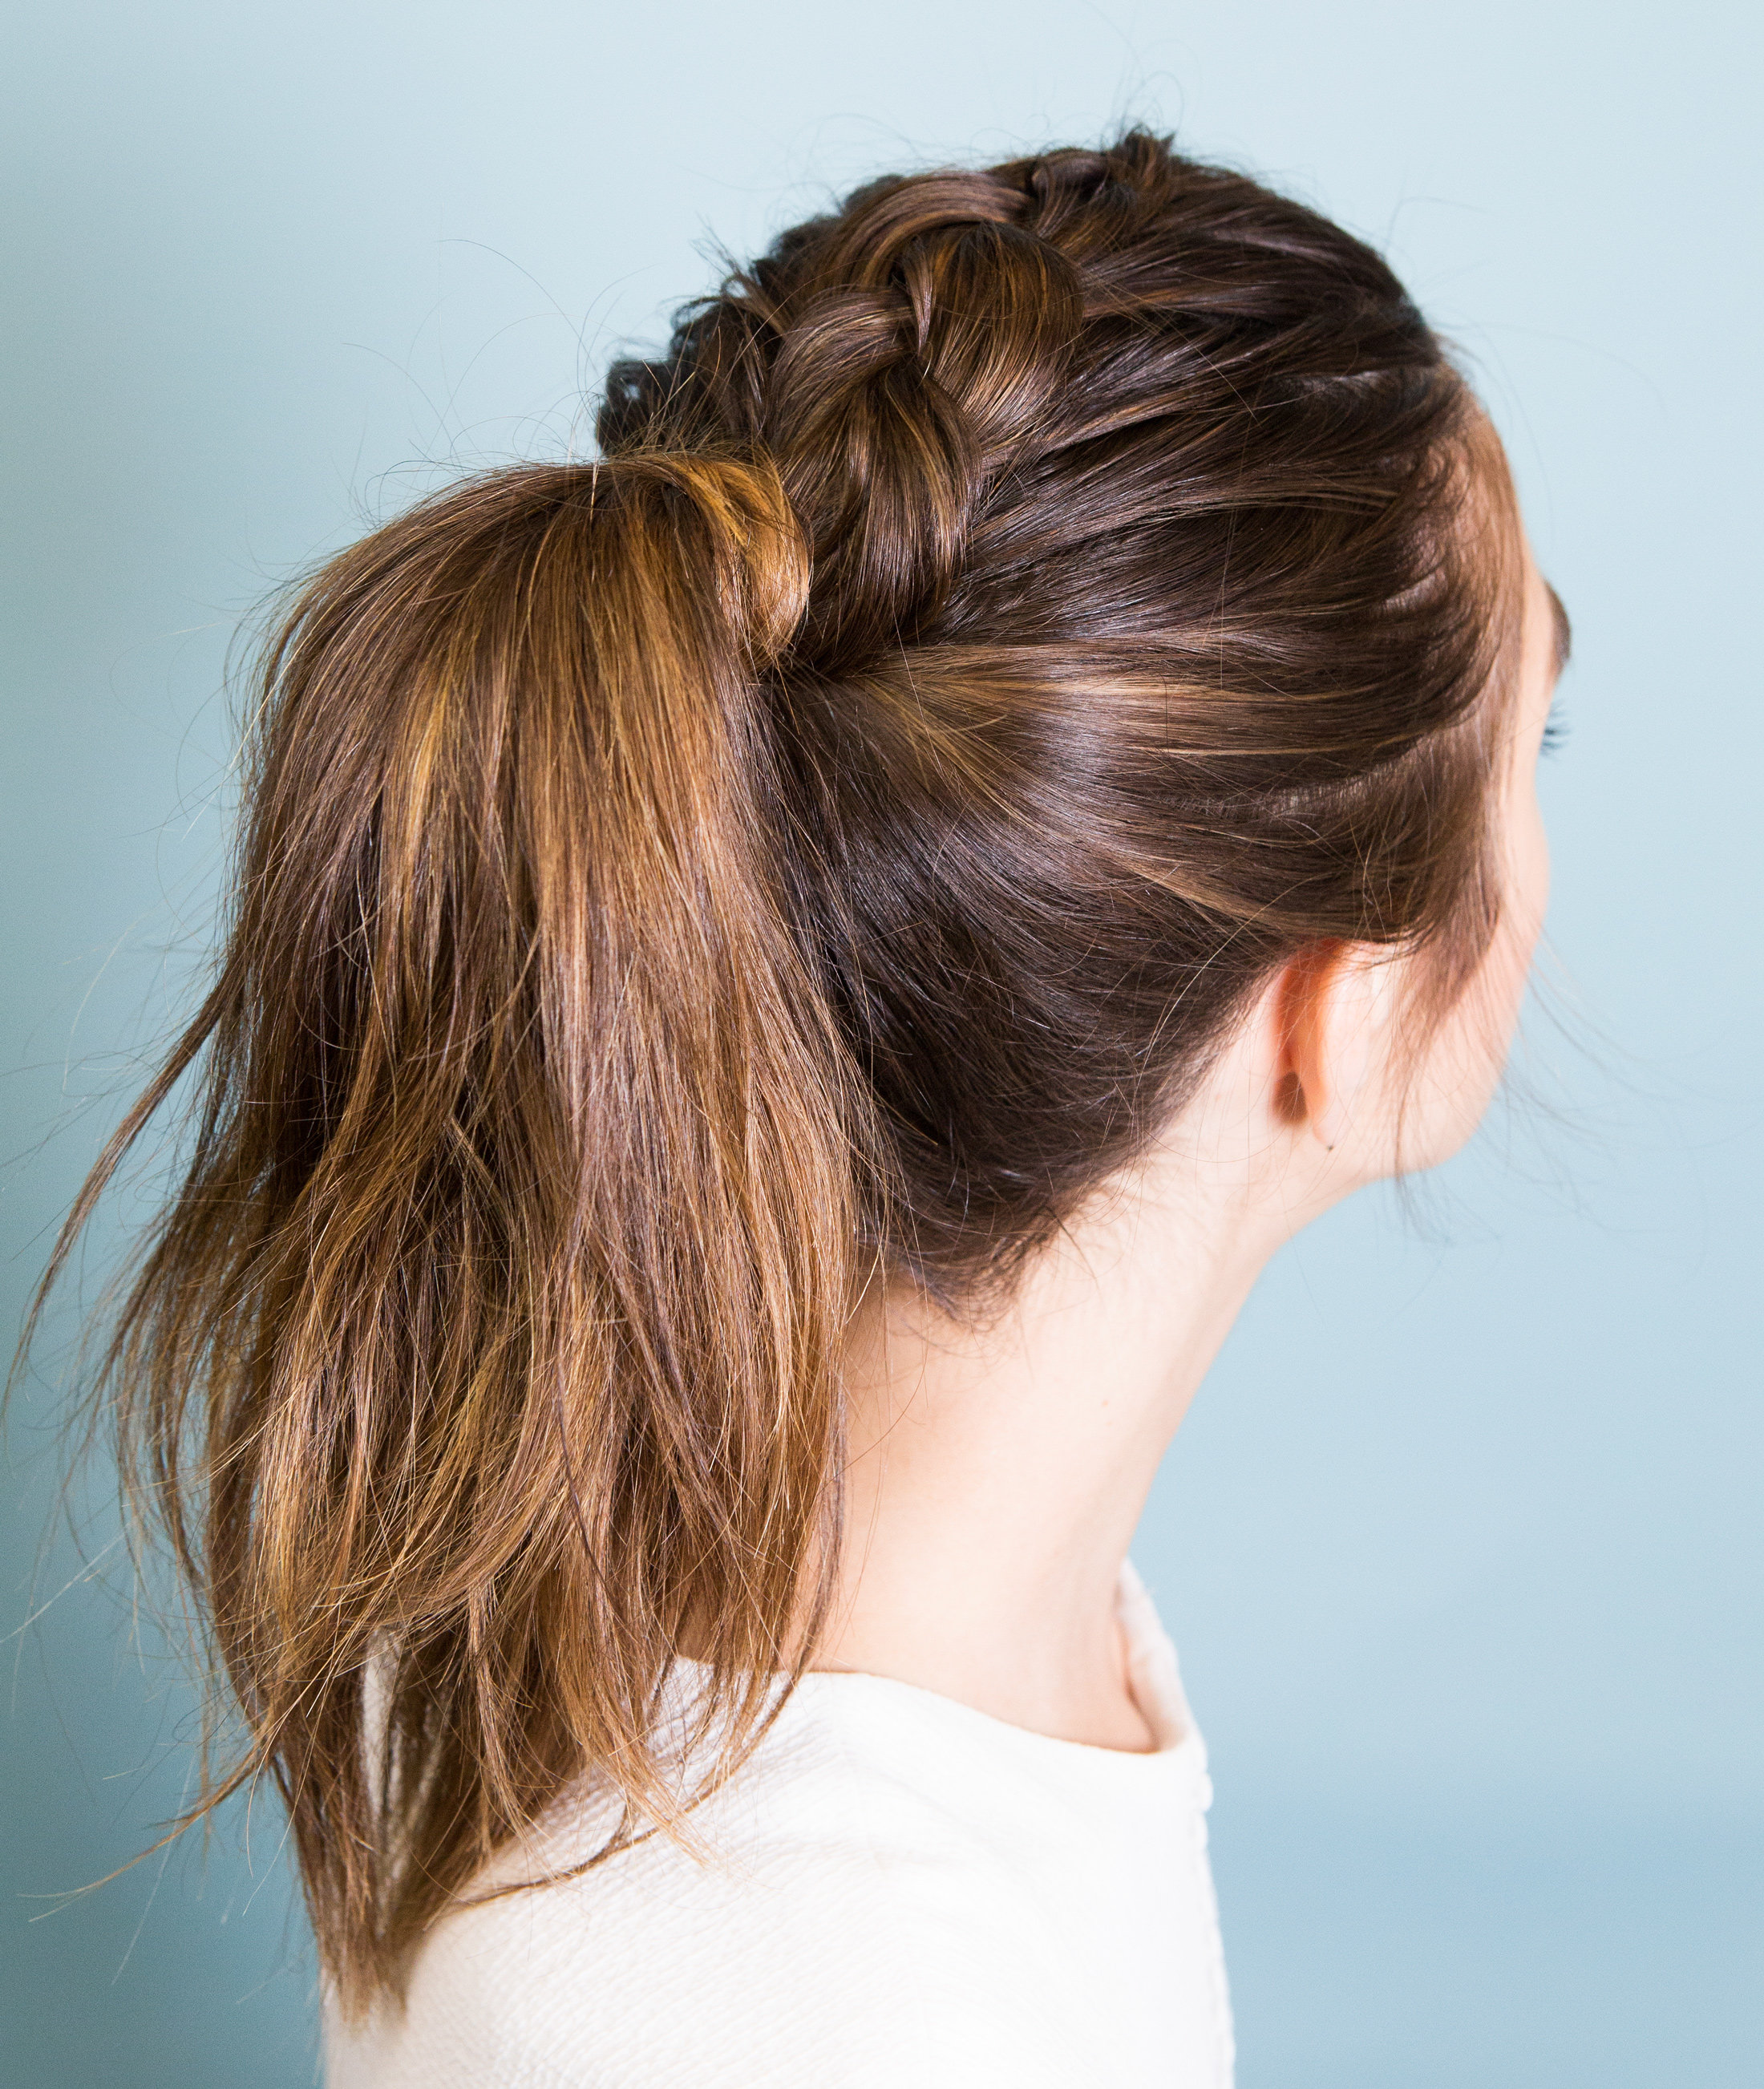 BRAIDS HOW-TO - Inside Out Pony Braid EMBED